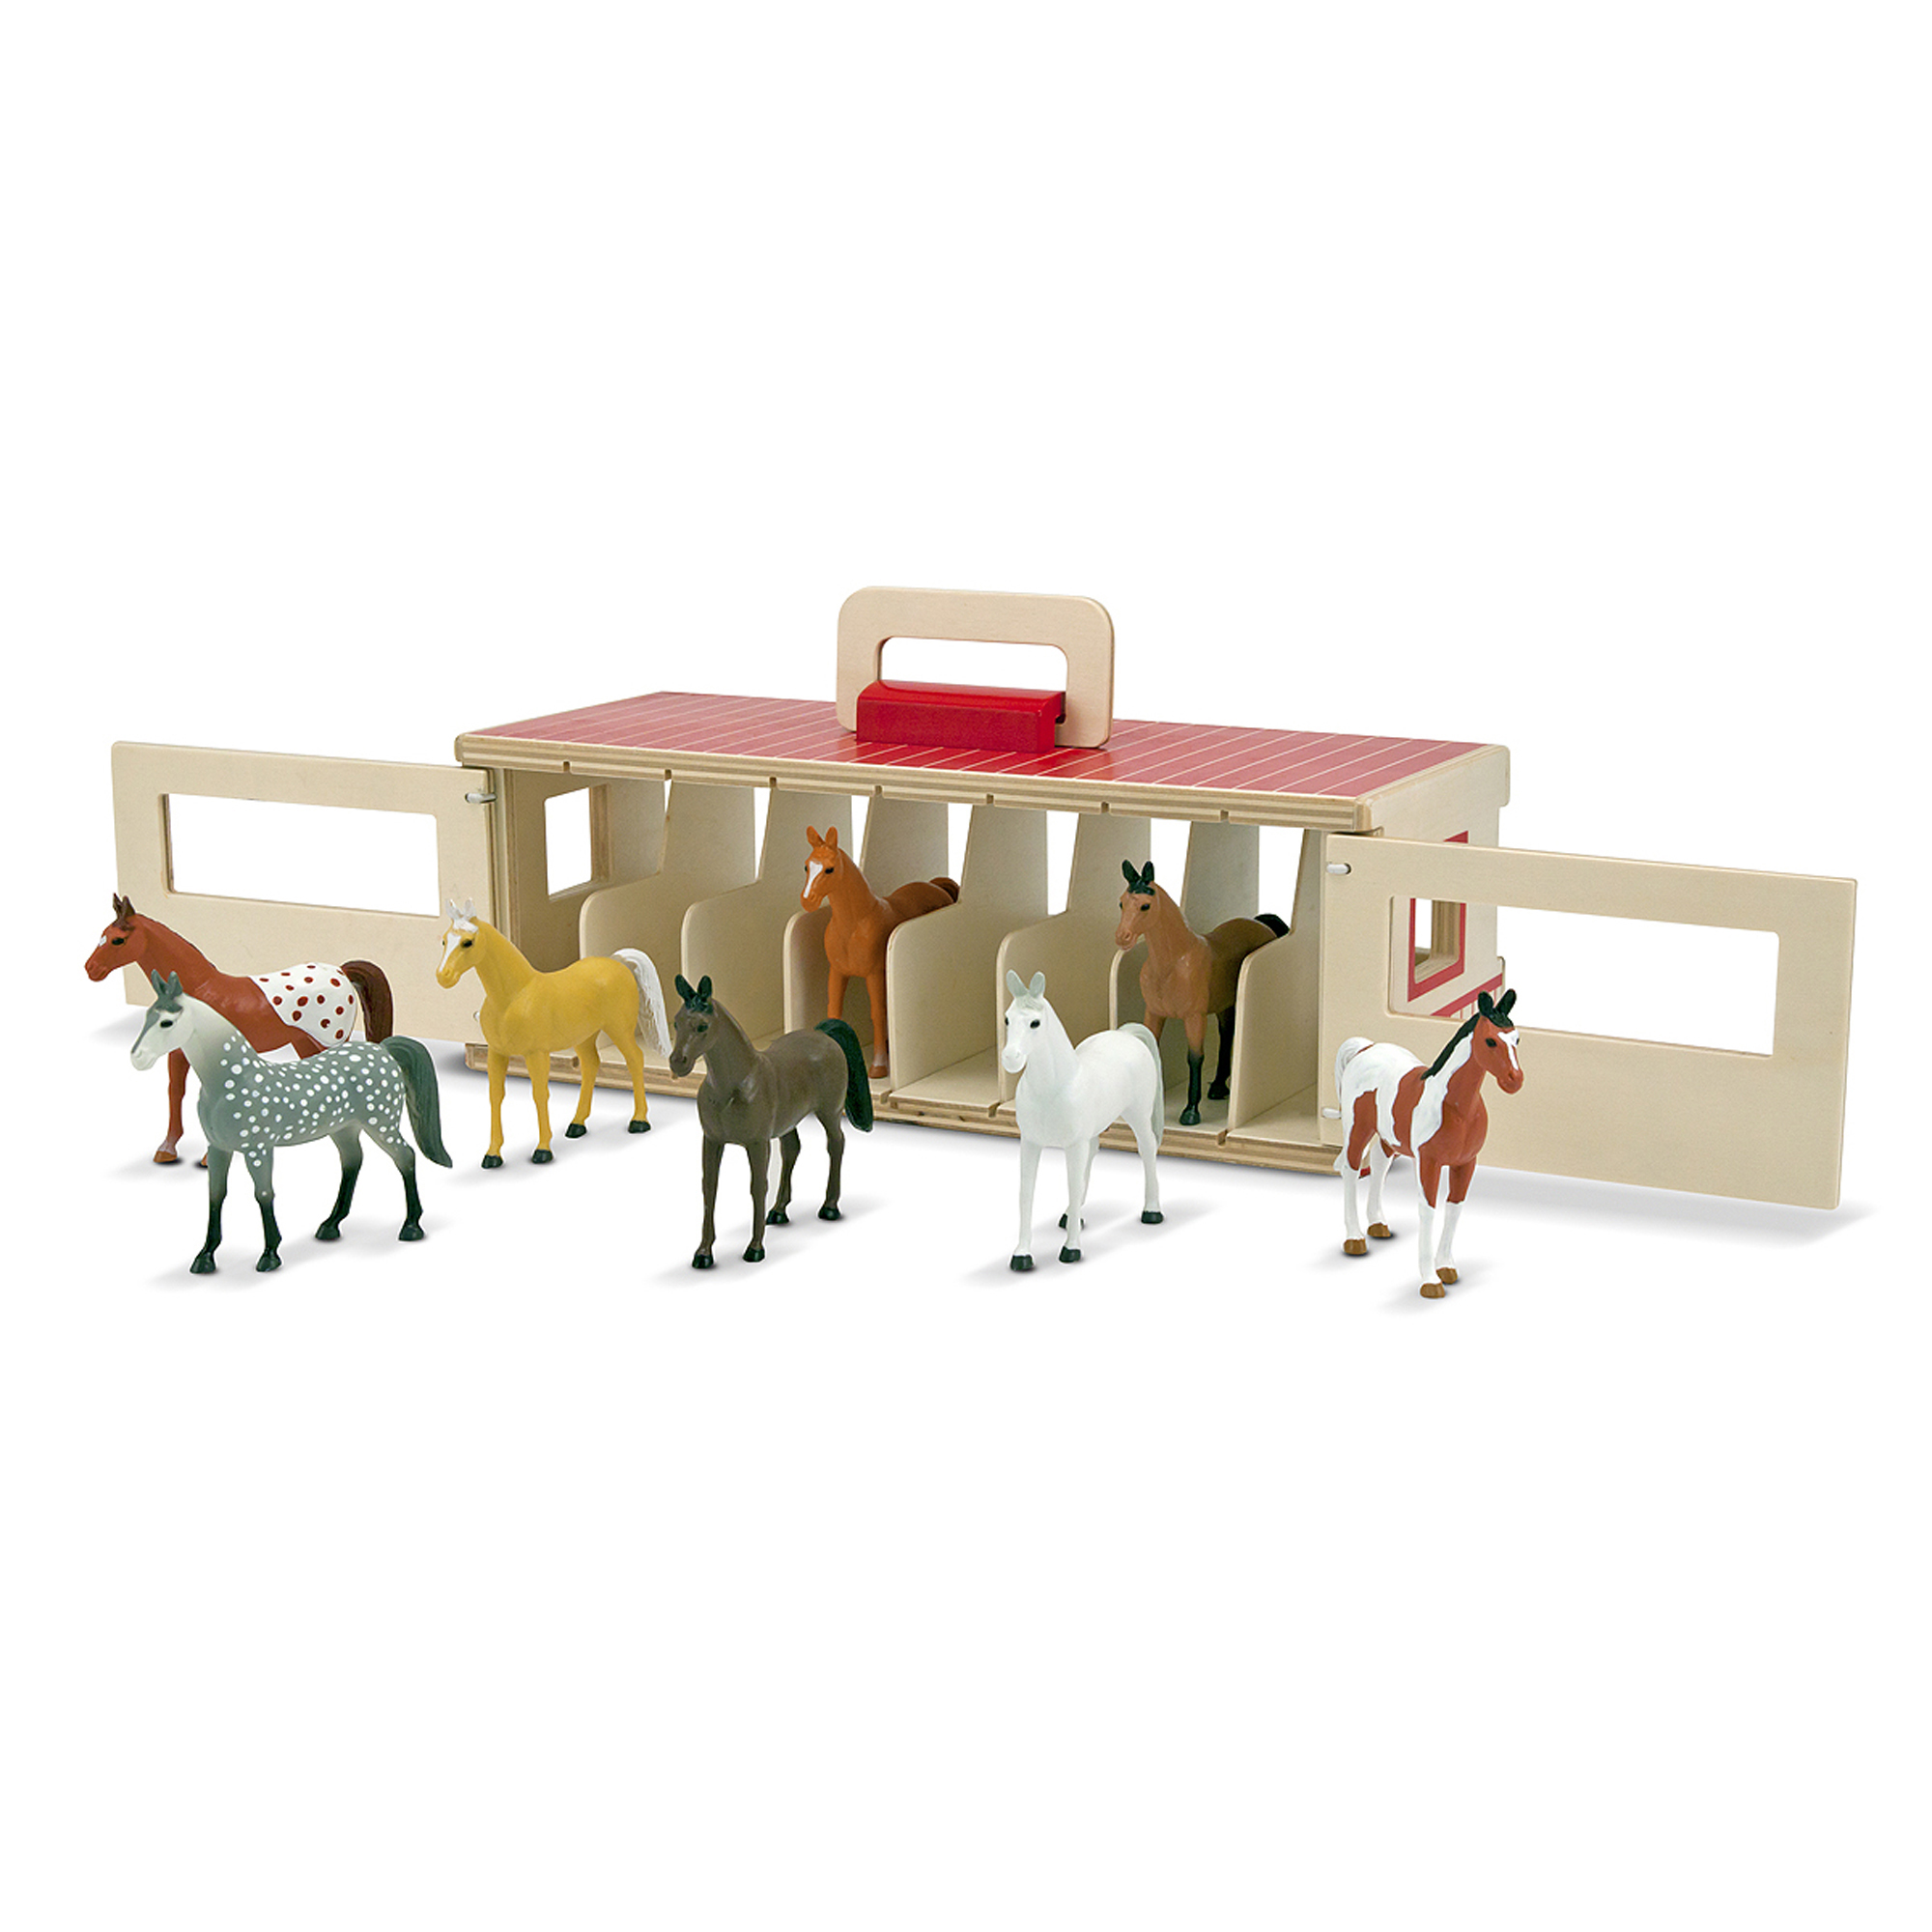 Take-Along Show-Horse Stable Play Set 3744